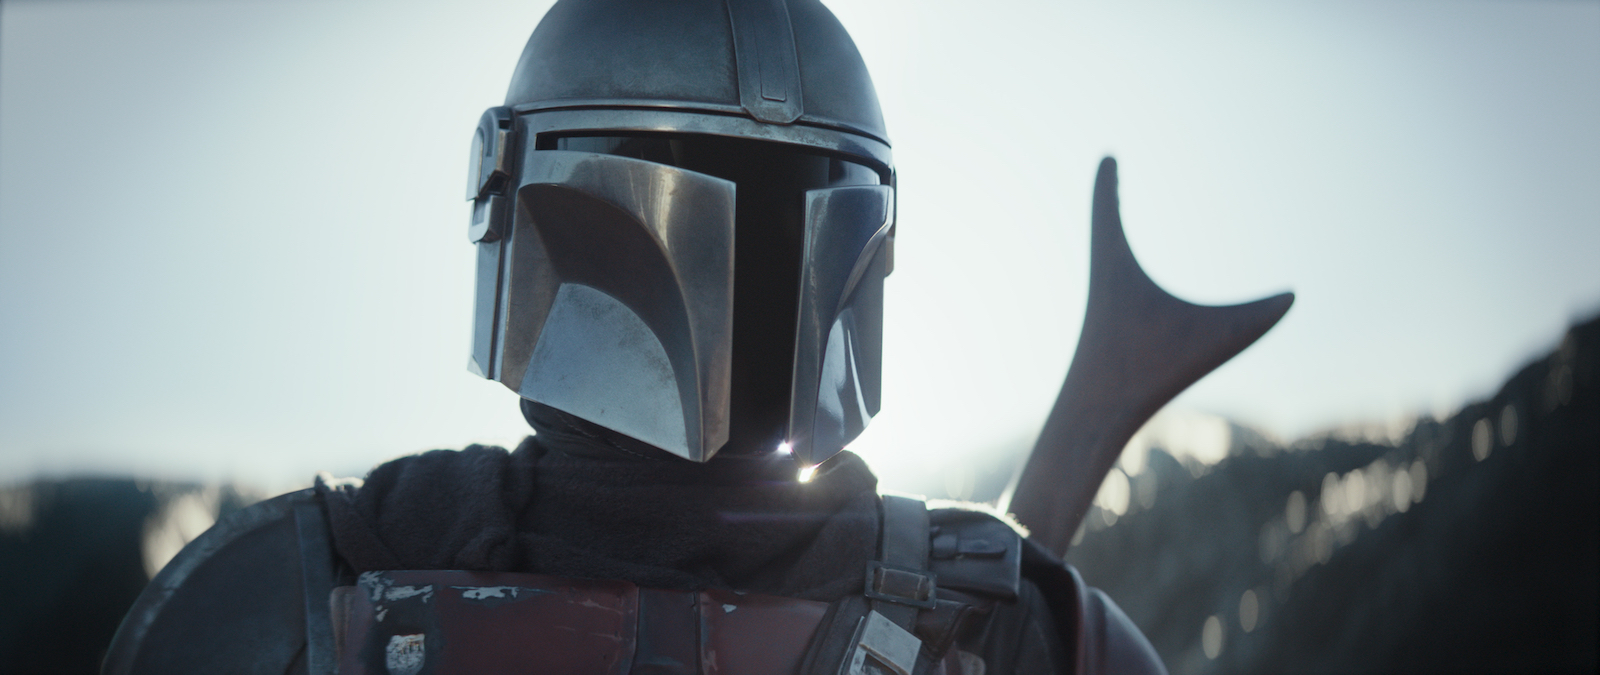 REVIEW: Pedro Pascal Is the Quintessential Mystery Man in Space Western 'The Mandalorian'